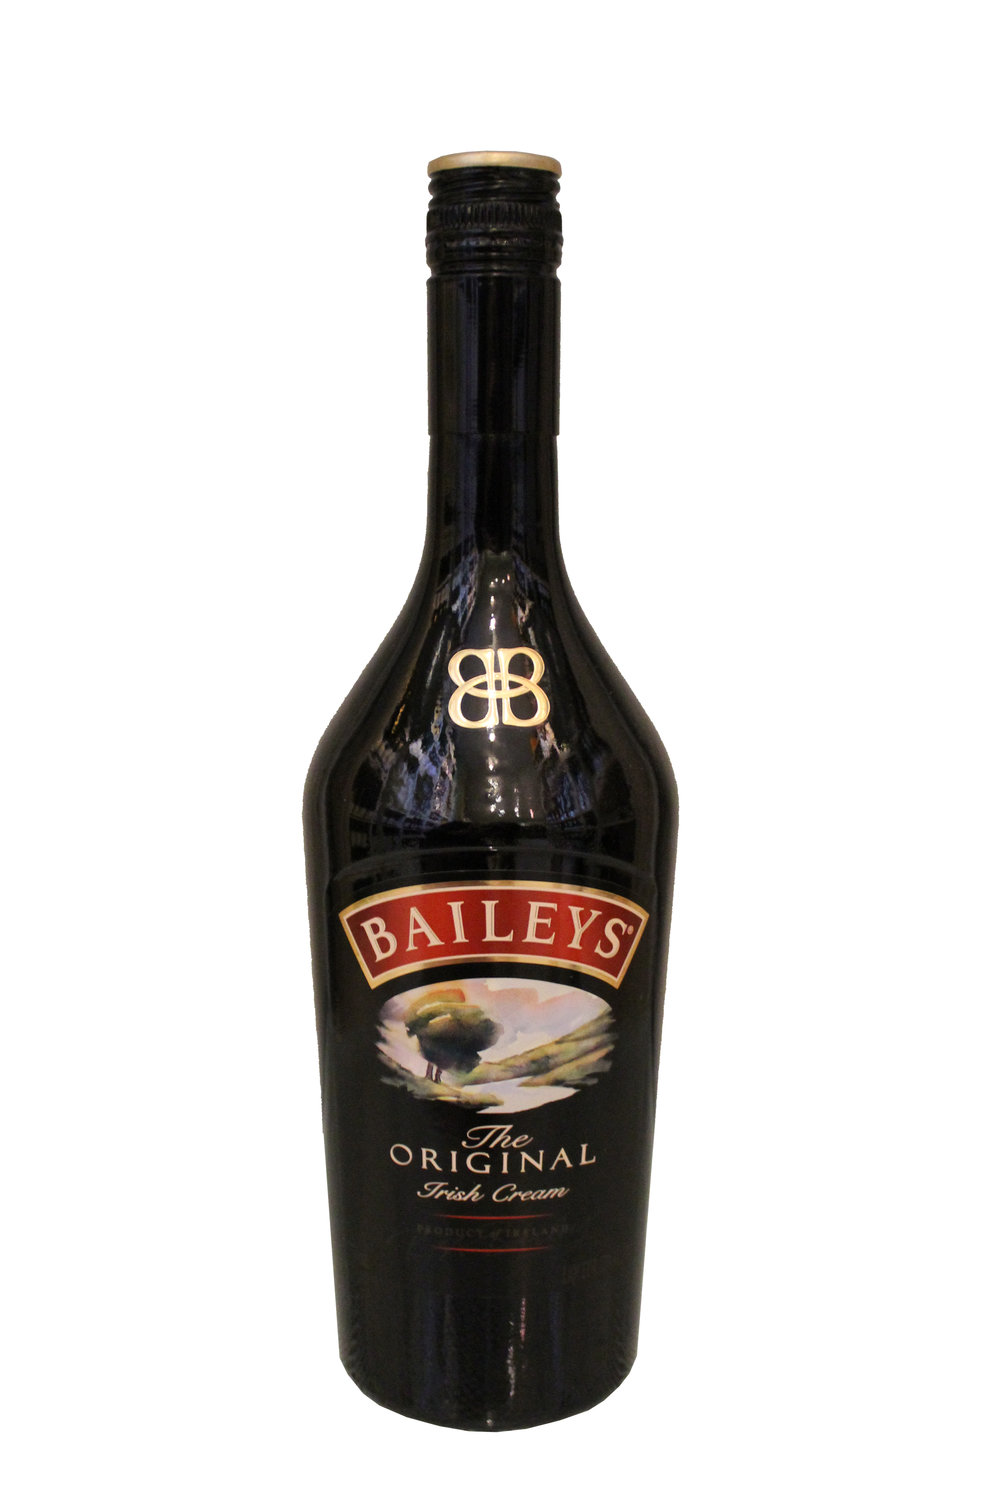 Irish Cream Liqueur Baileys, Ireland